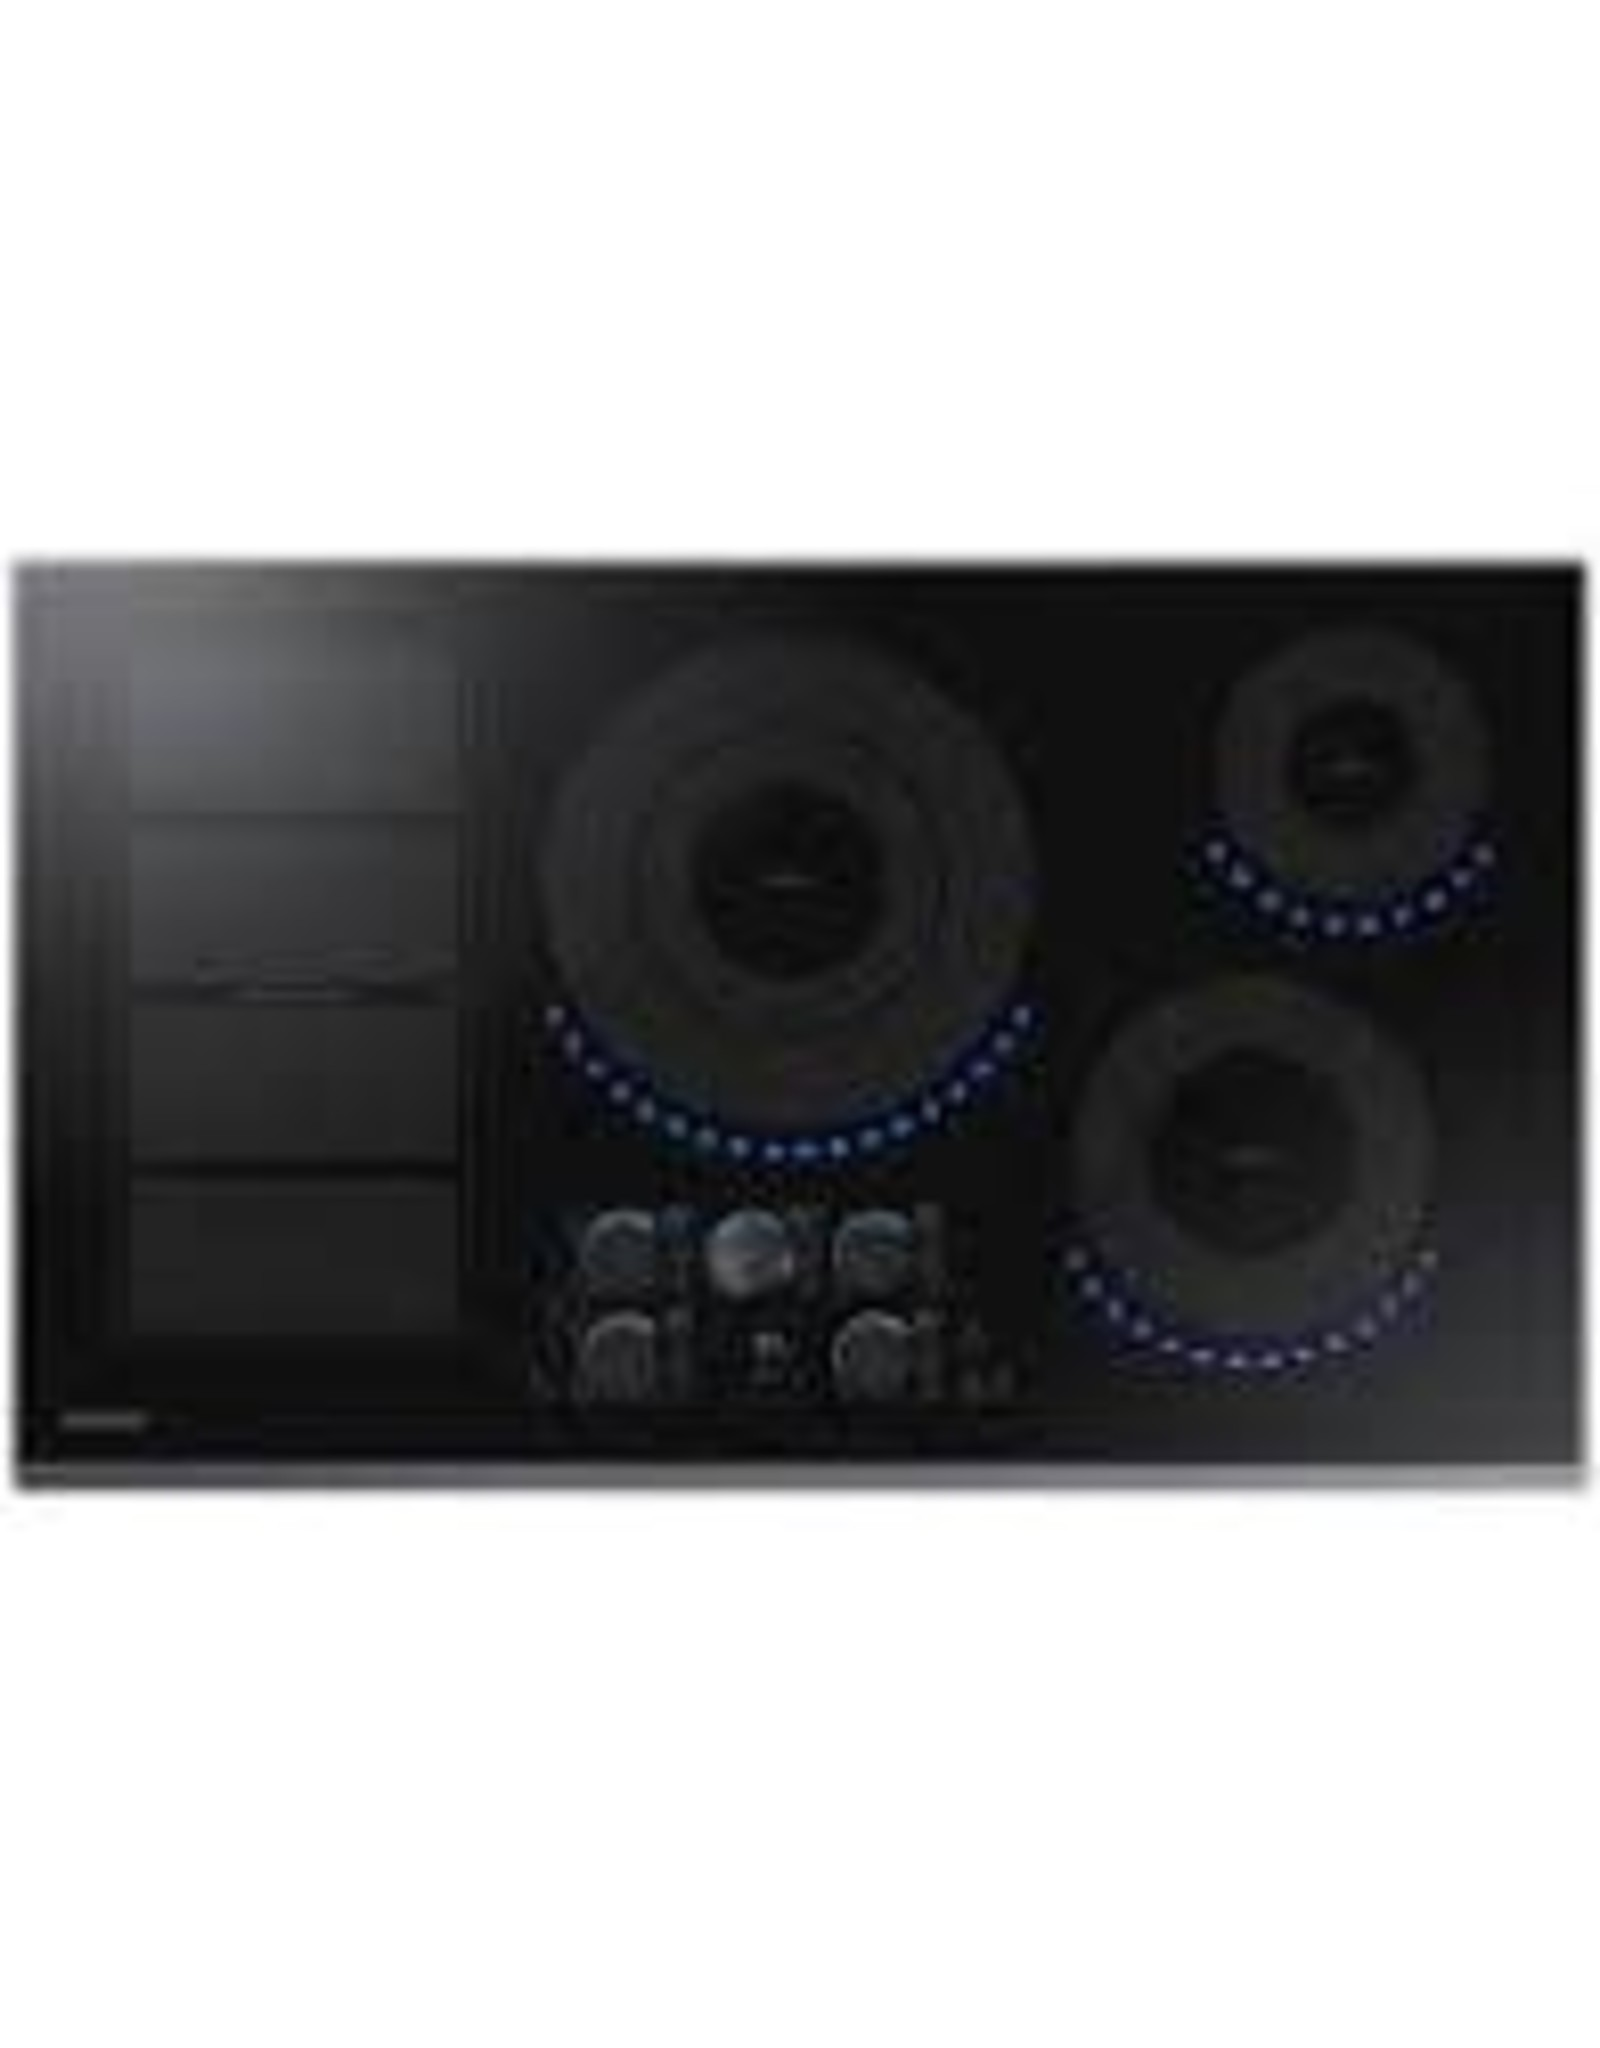 SAMSUNG NZ36K7880UG  36 in. Induction Cooktop with Fingerprint Resistant Black Stainless Trim with 5 Elements and Flex Zone Element